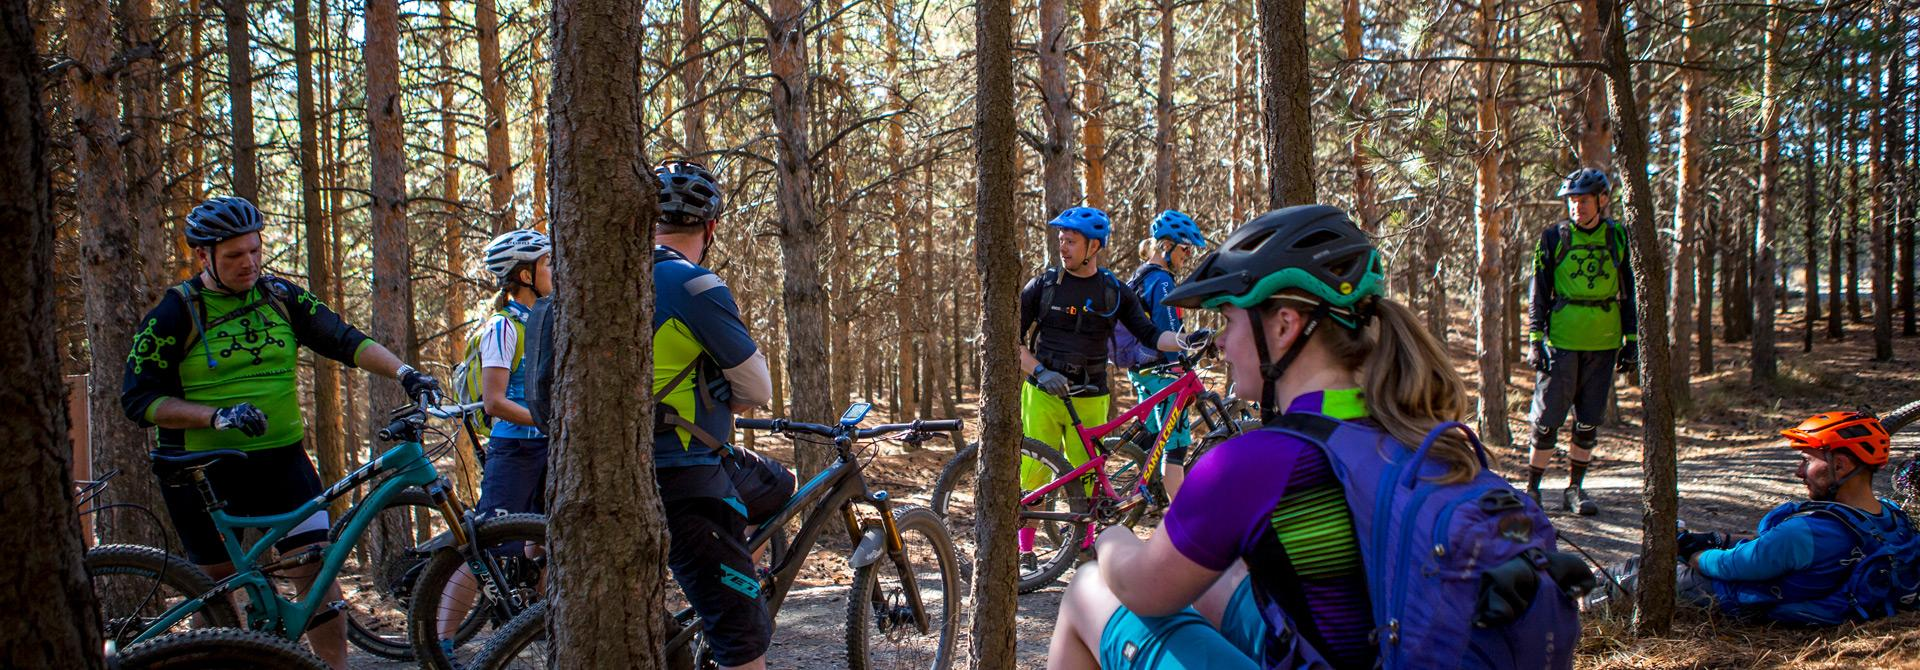 Group mountain bike holiday in Spain